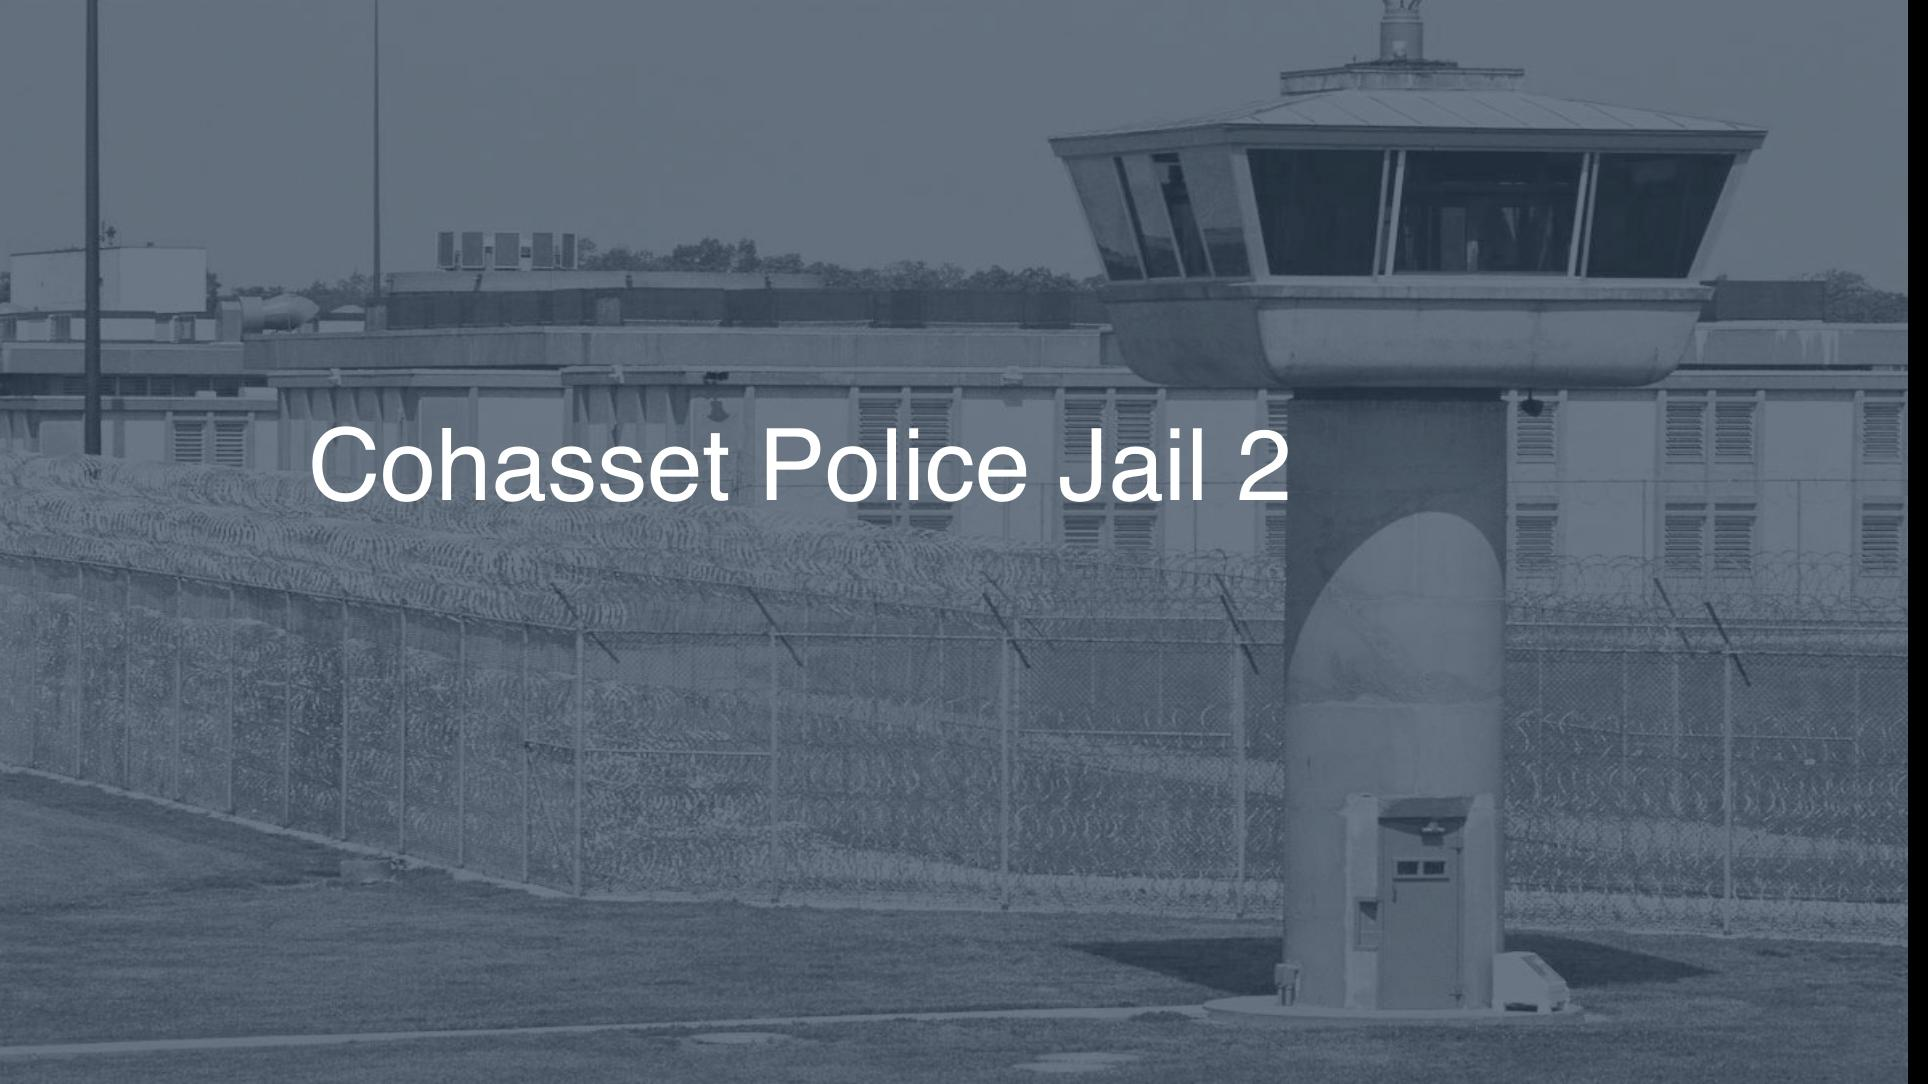 Cohasset Police Jail correctional facility picture